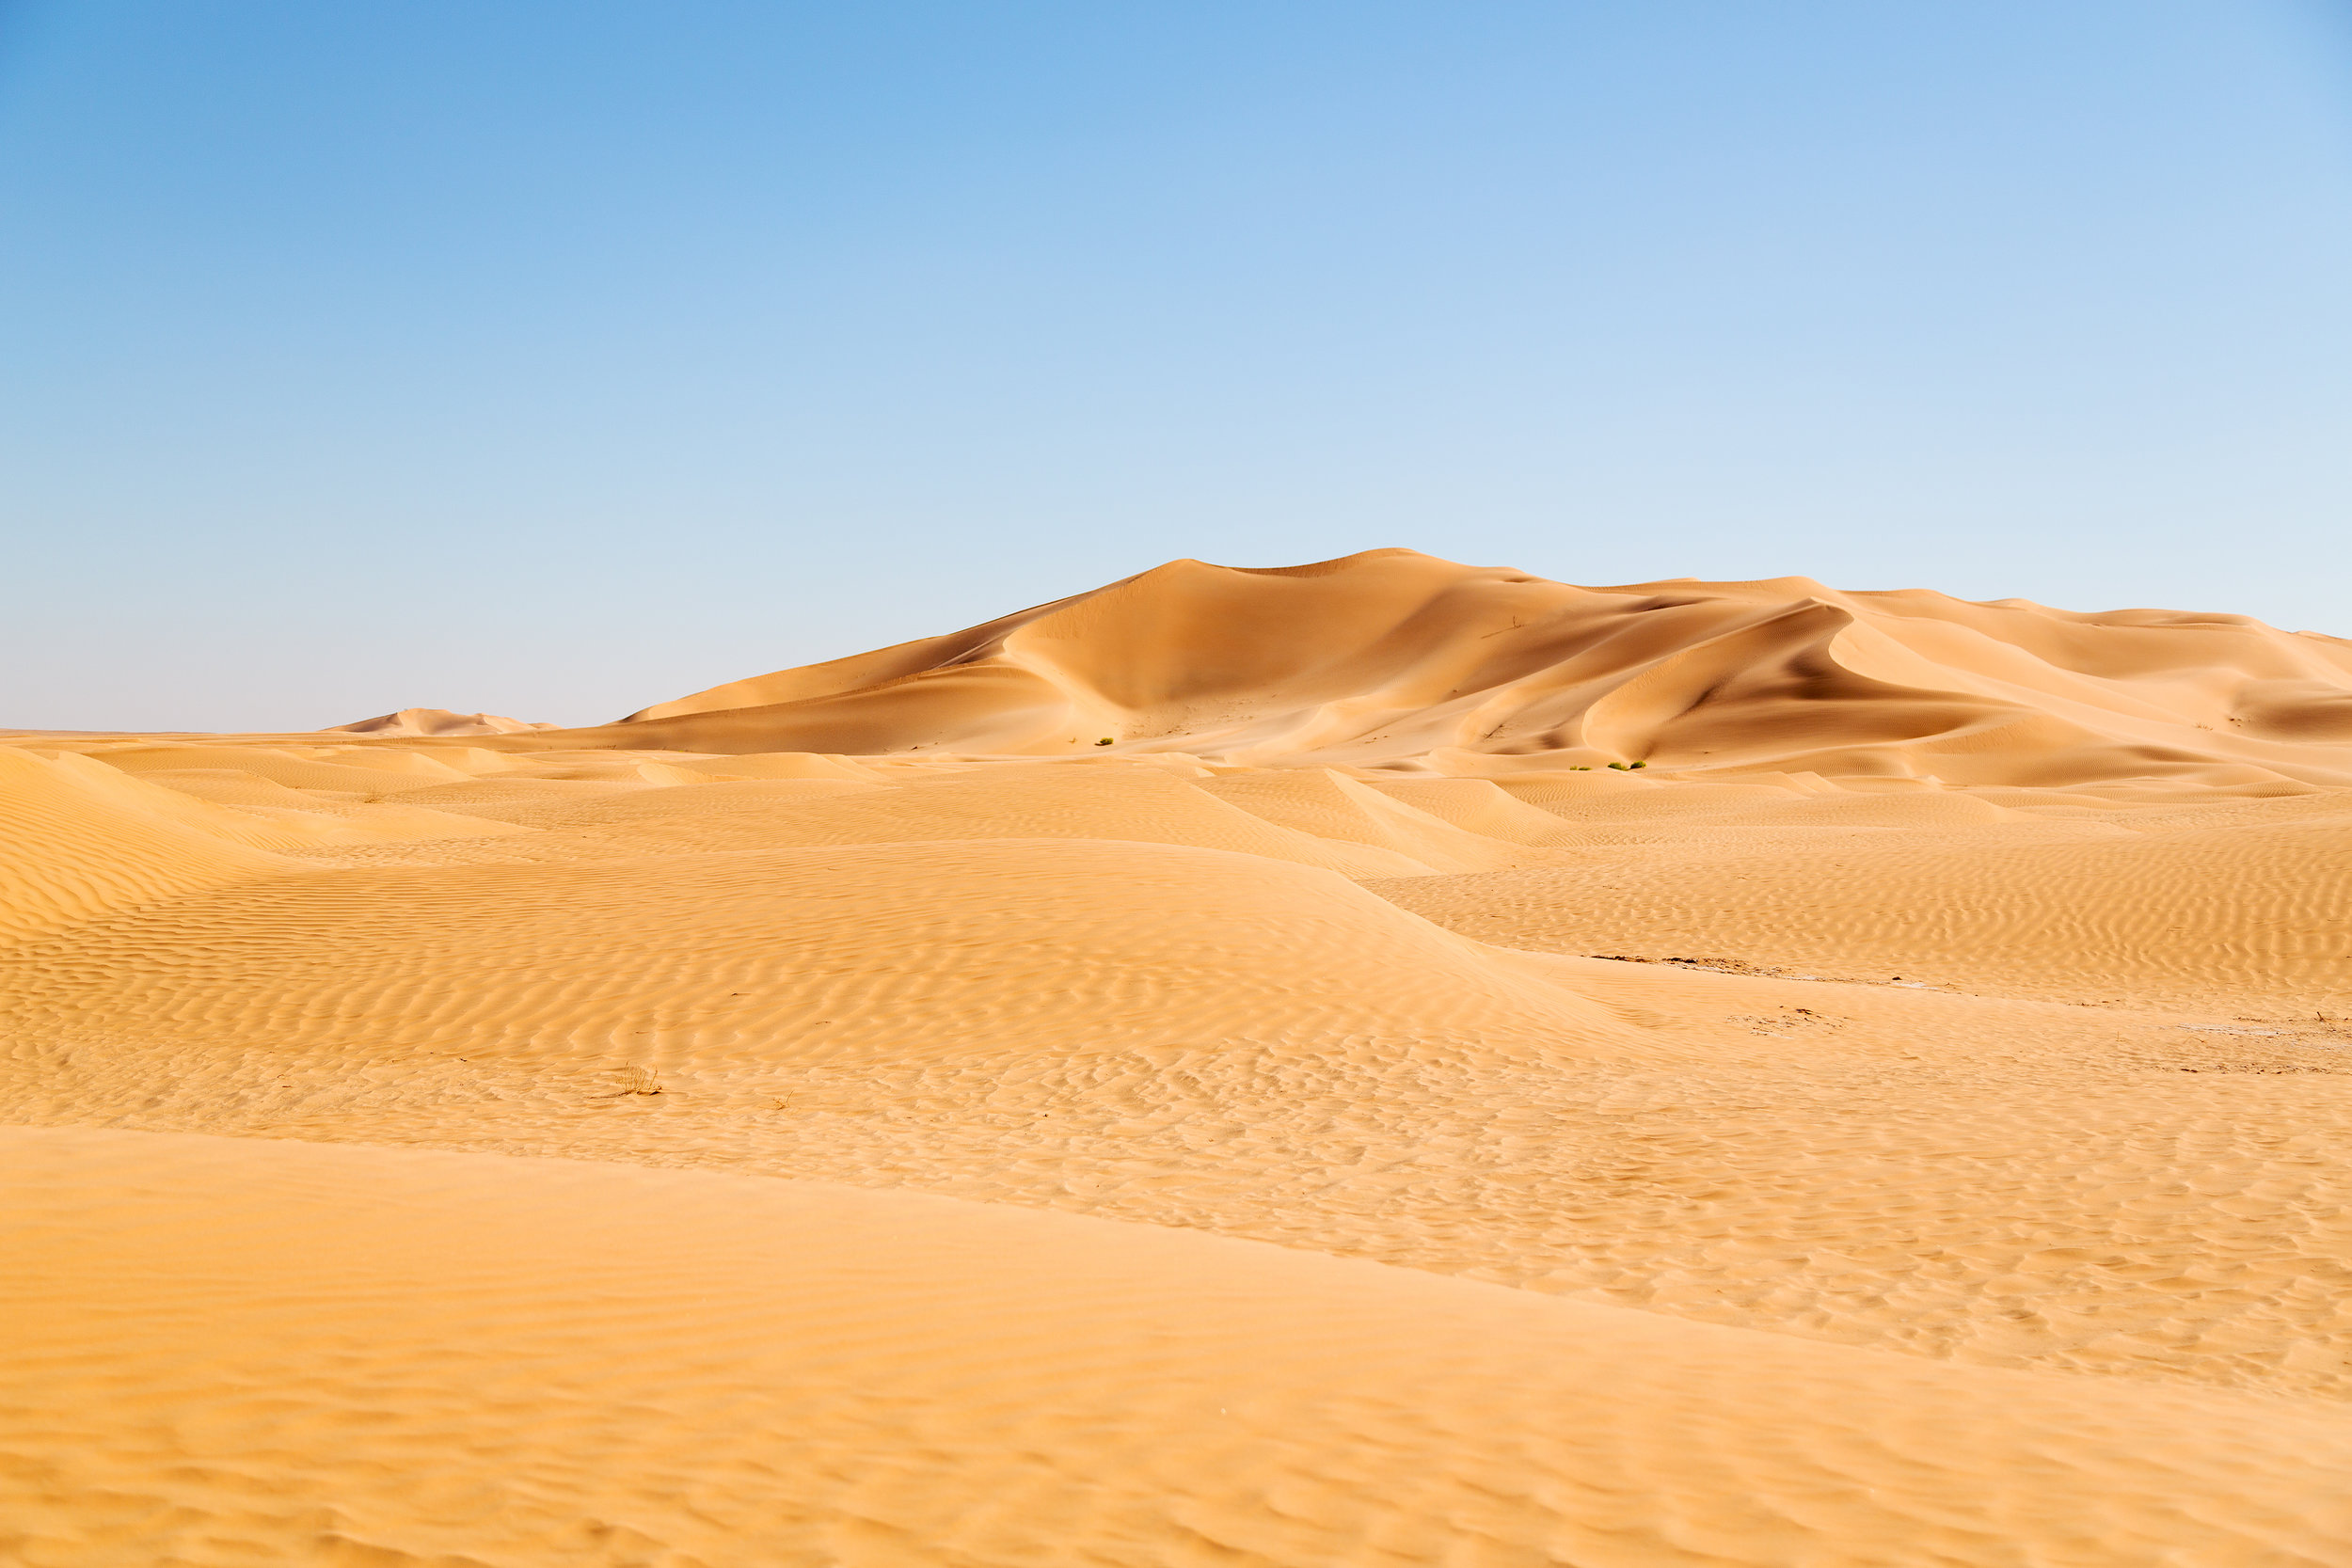 Deserts are places that get less than 10 inches of rain per year.